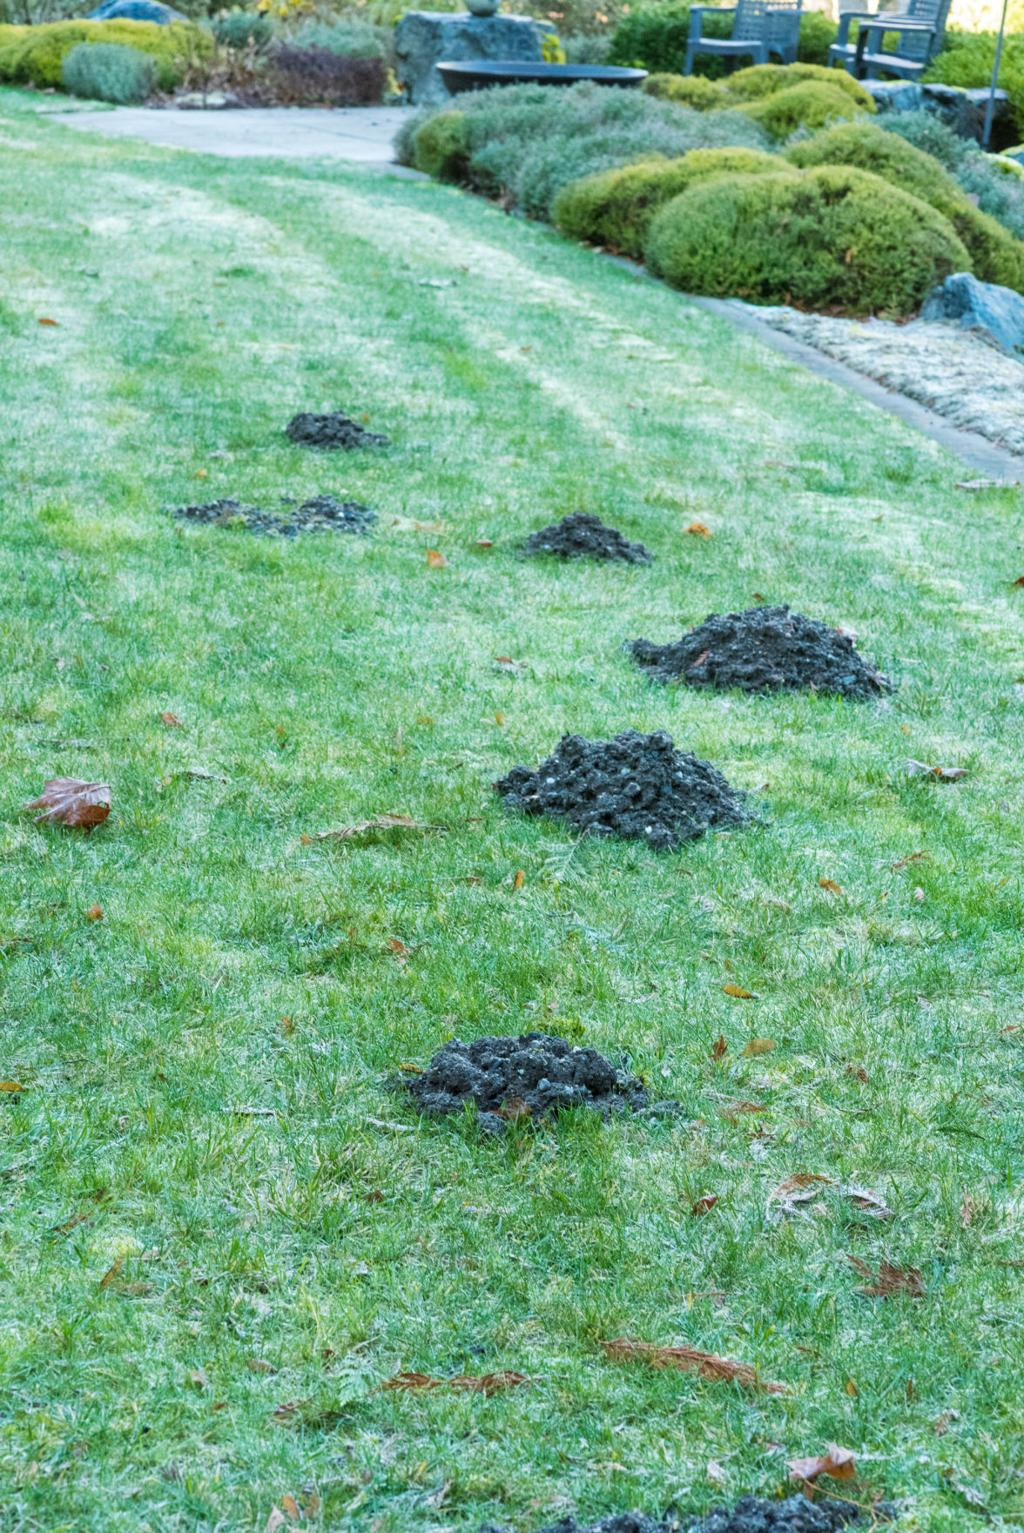 Rats In Backyard  How to Get Rid Rats In Your Backyard 2021